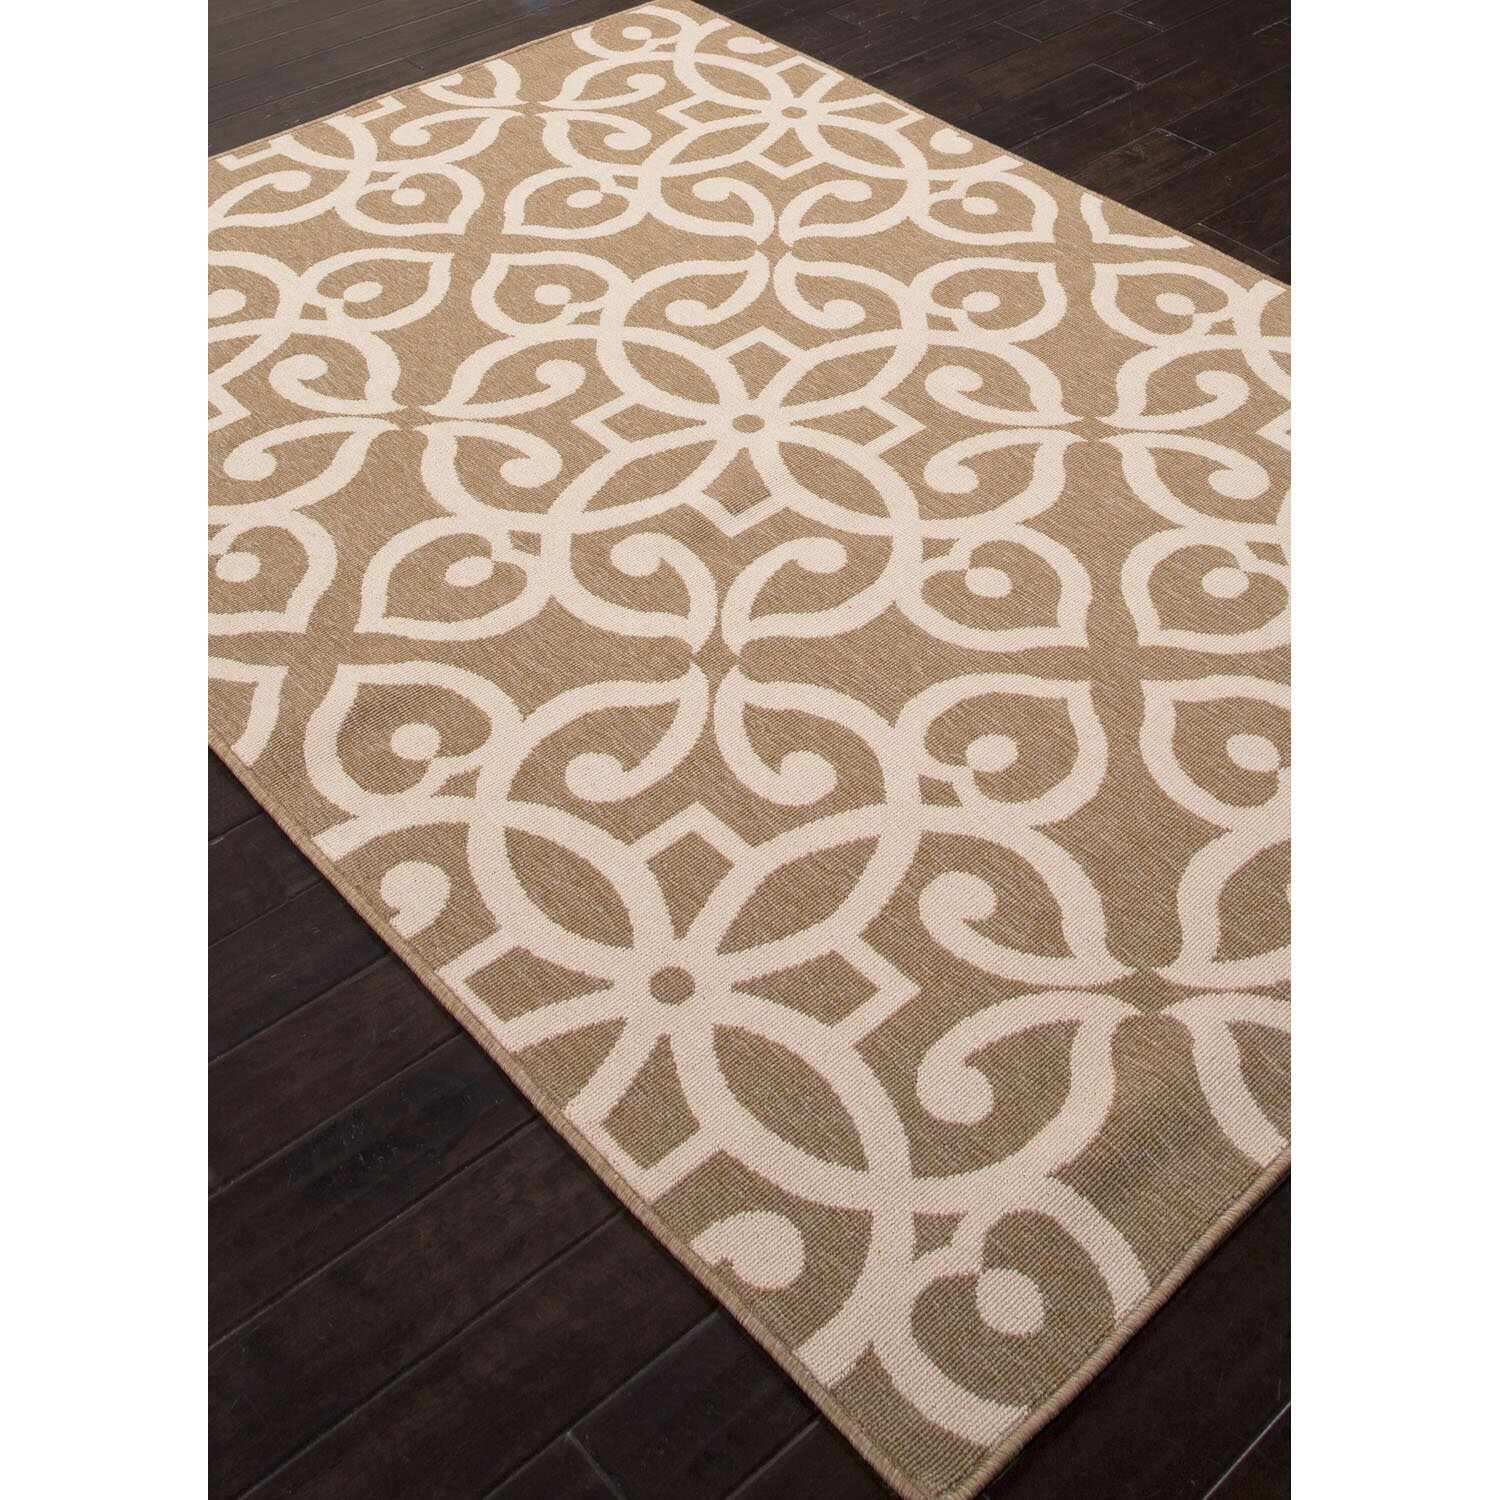 Living Room Rugs 9x12 Of Jaipurliving Bloom Brown Taupe Indoor Outdoor Area Rug